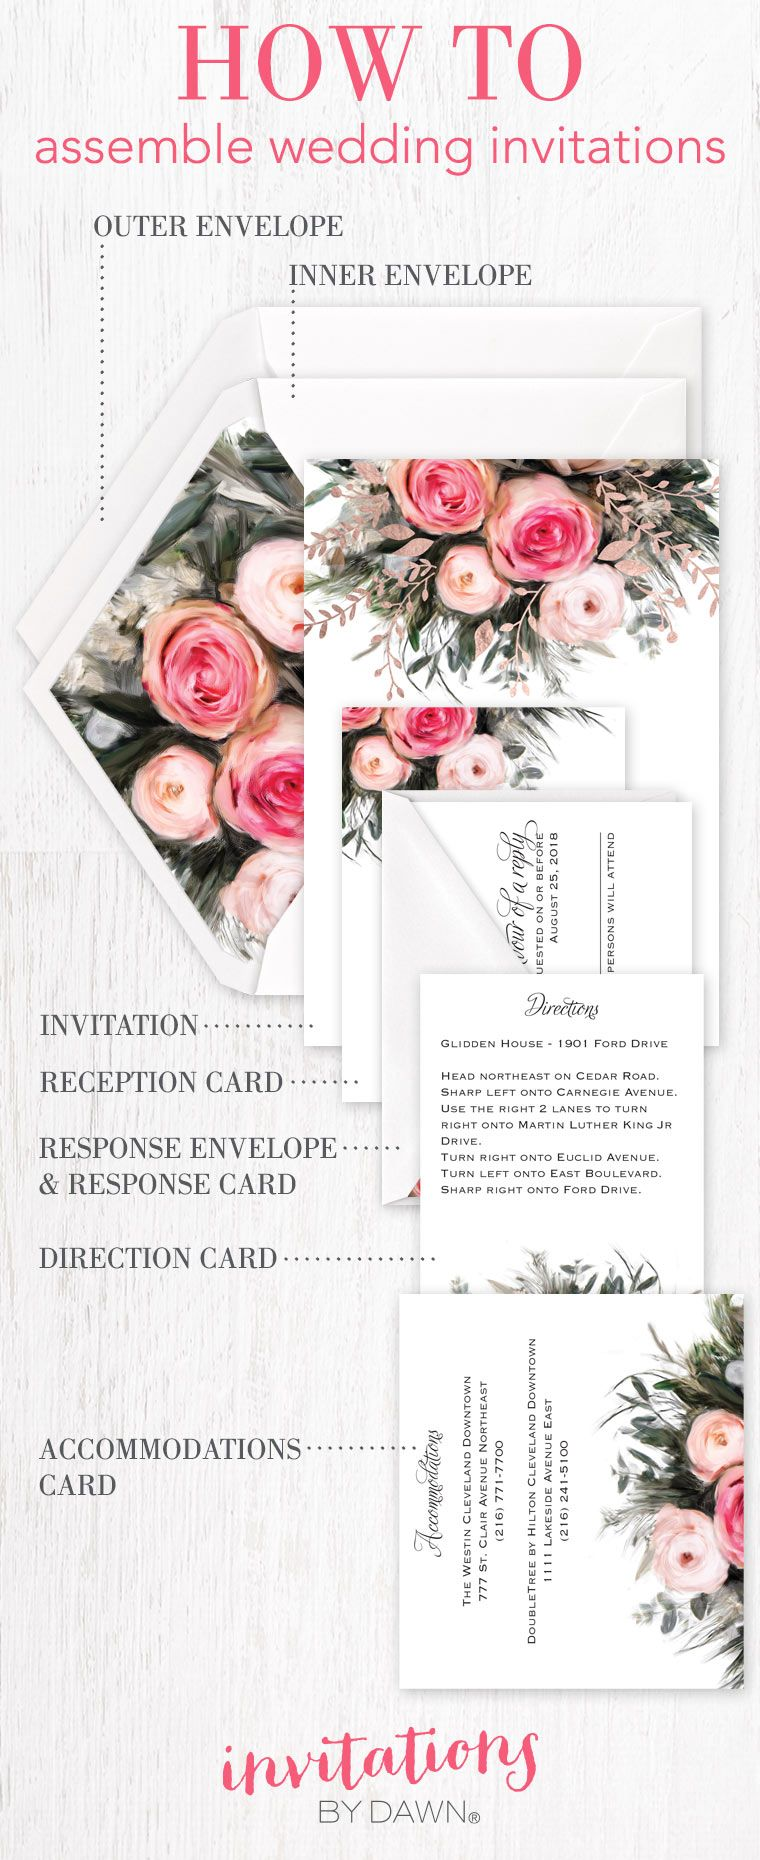 How To Assemble Wedding Invitations The Basics On How To Configure Wedd Order Wedding Invitations Assembling Wedding Invitations Wedding Invitation Envelopes